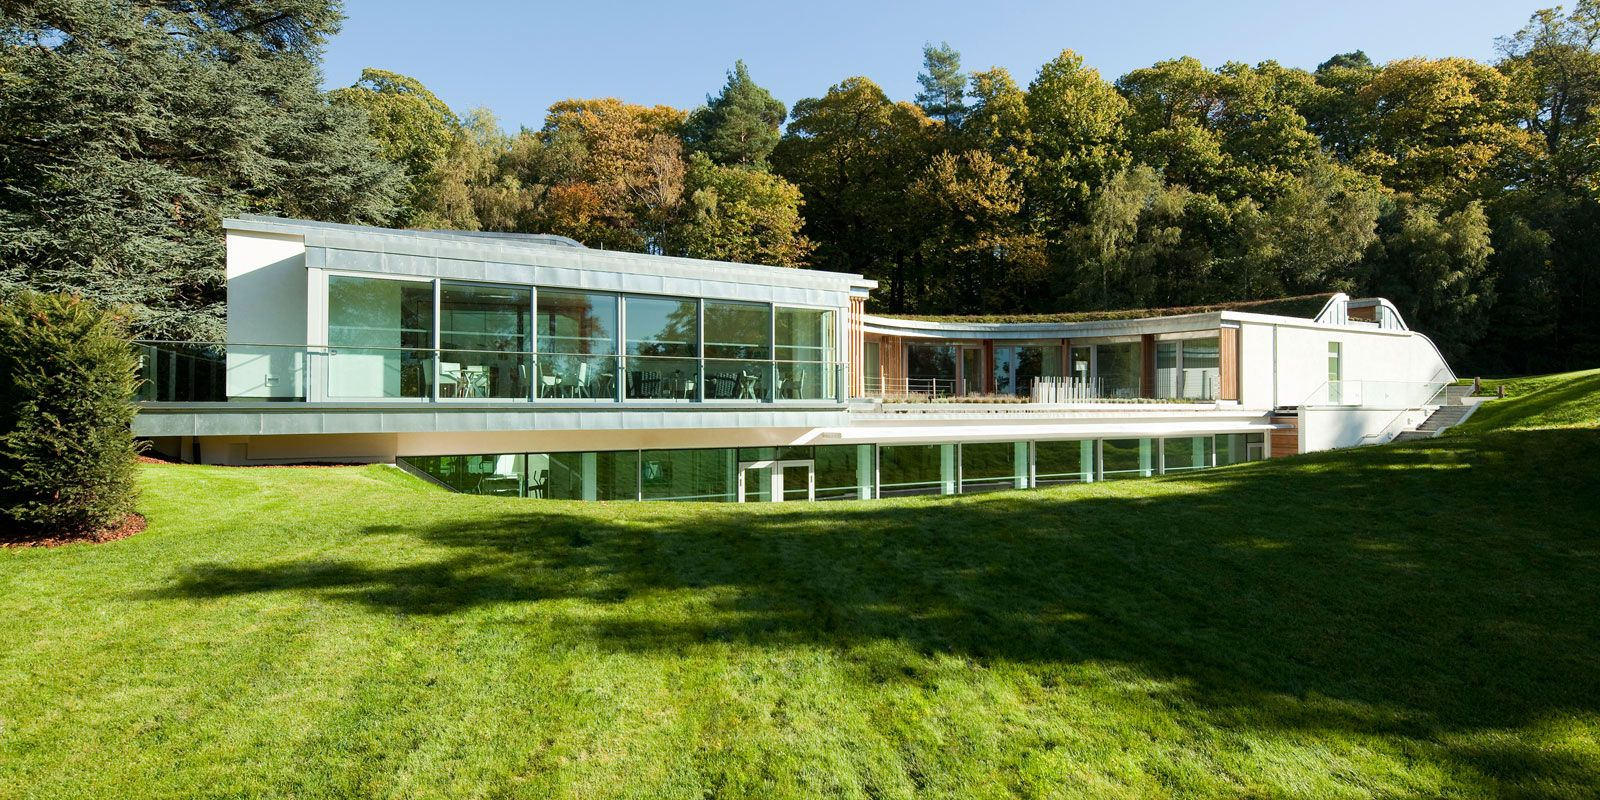 """<p><a href=""""https://www.dorchestercollection.com/"""" target=""""_blank"""">The Dorchester Collection</a>'s countryside property, Coworth Park, is a meticulous 18<sup>th</sup> century country house located in Ascot. The serenity of the location combined with the elegance of its five-star spa make this the perfect weekend getaway from the busy London bustle.</p><p><br></p><p><em><a href=""""https://www.dorchestercollection.com/en/ascot/coworth-park/"""" target=""""_blank"""">Coworth Park</a>&#x3B; Blacknest Rd, Ascot, Berkshire SL5 7SE, </em><em>+44 (0)1344 638 530.</em></p>"""